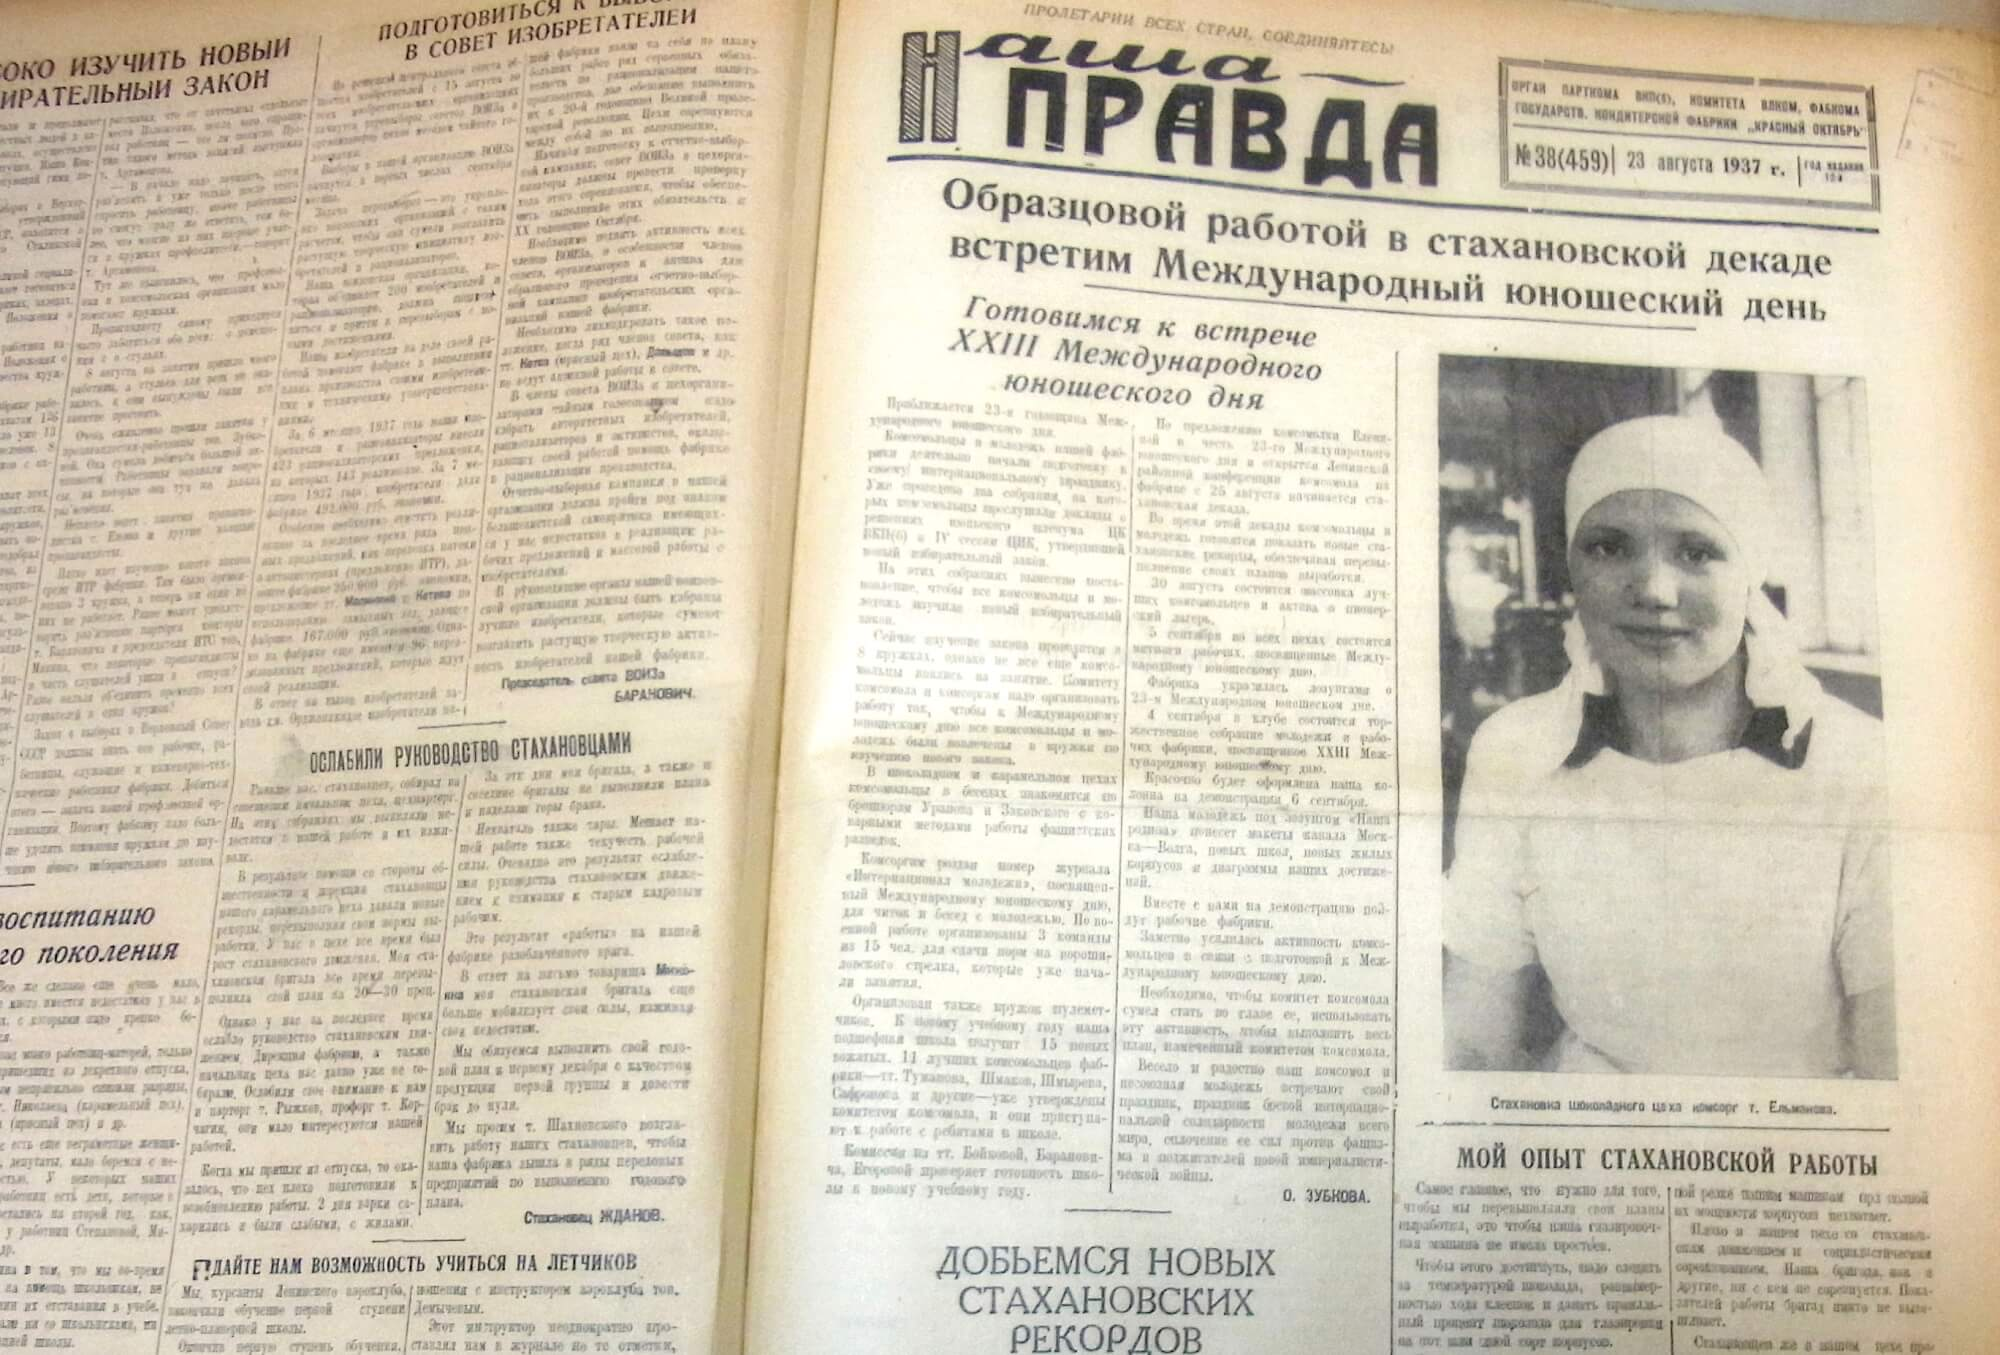 Research on Soviet Newspapers